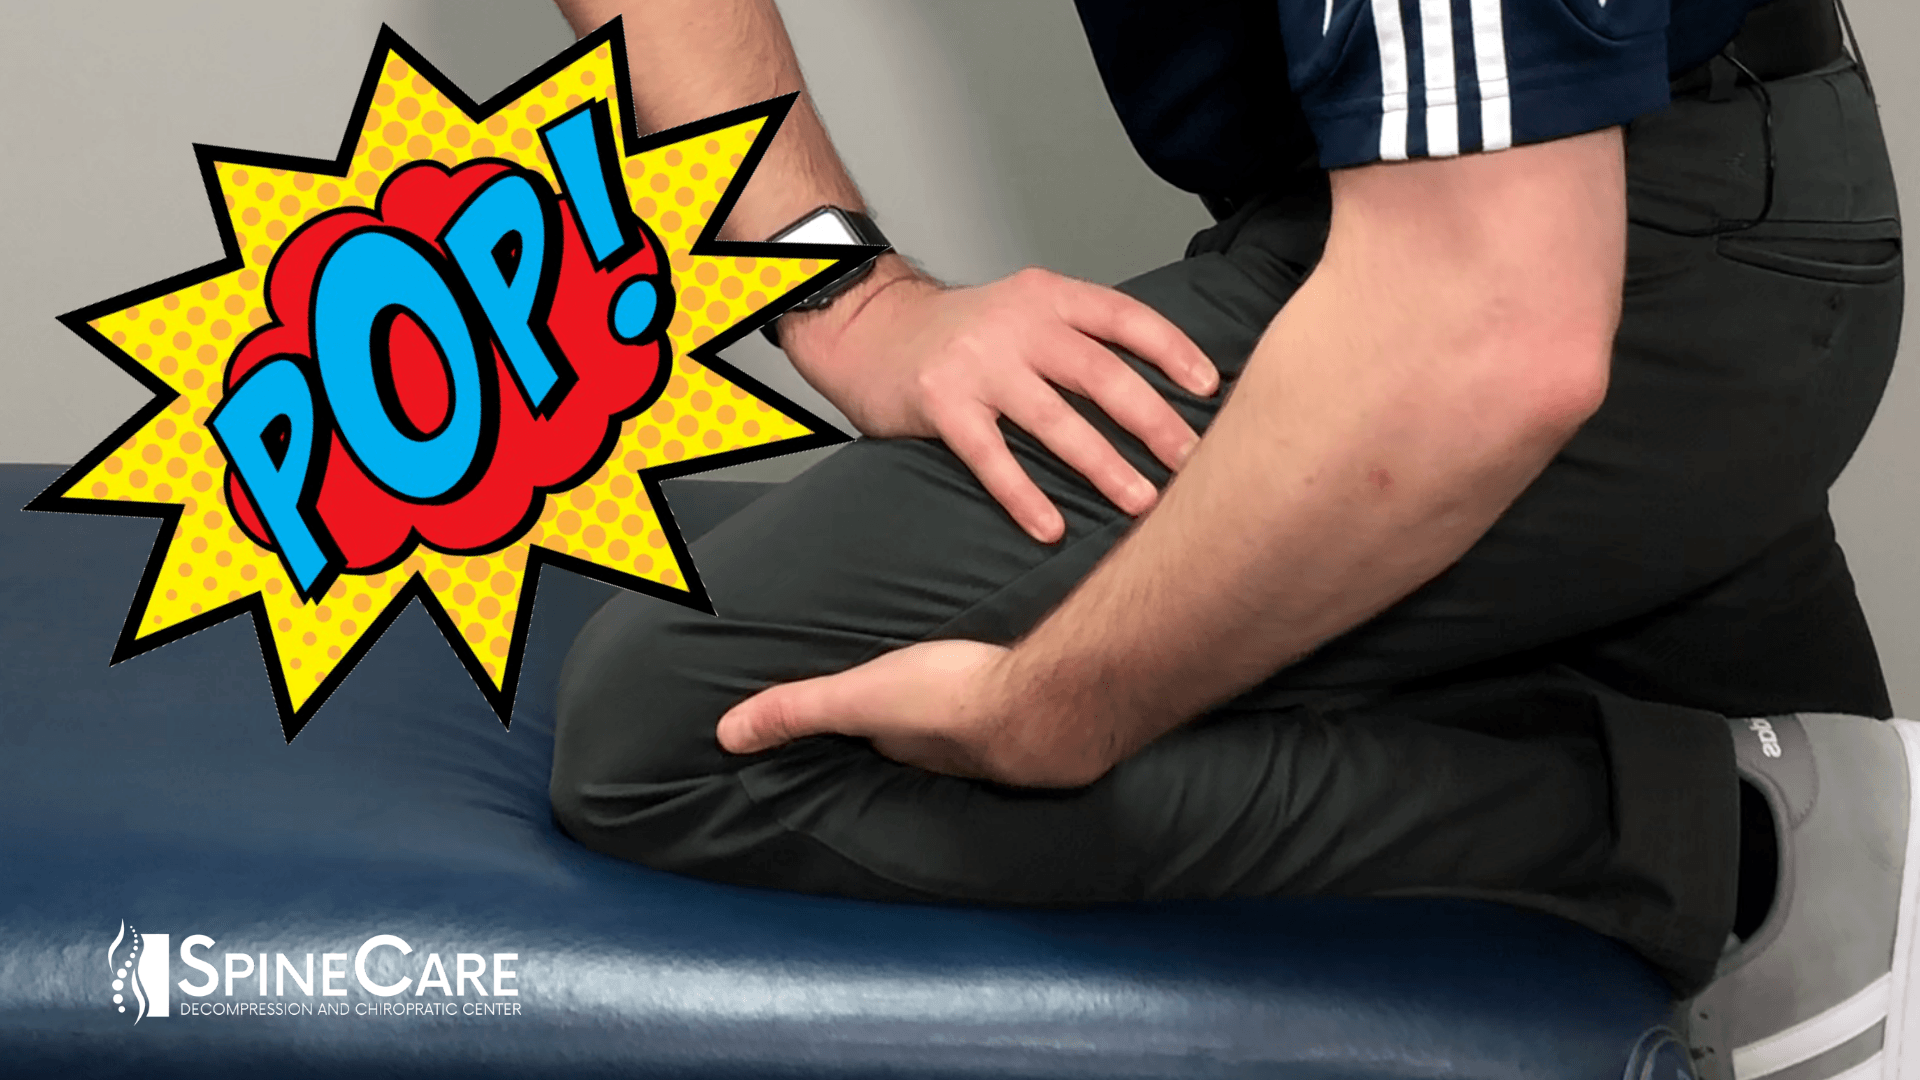 How to Self Adjust an Achy Knee | SpineCare | St. Joseph, MI Chiropractor